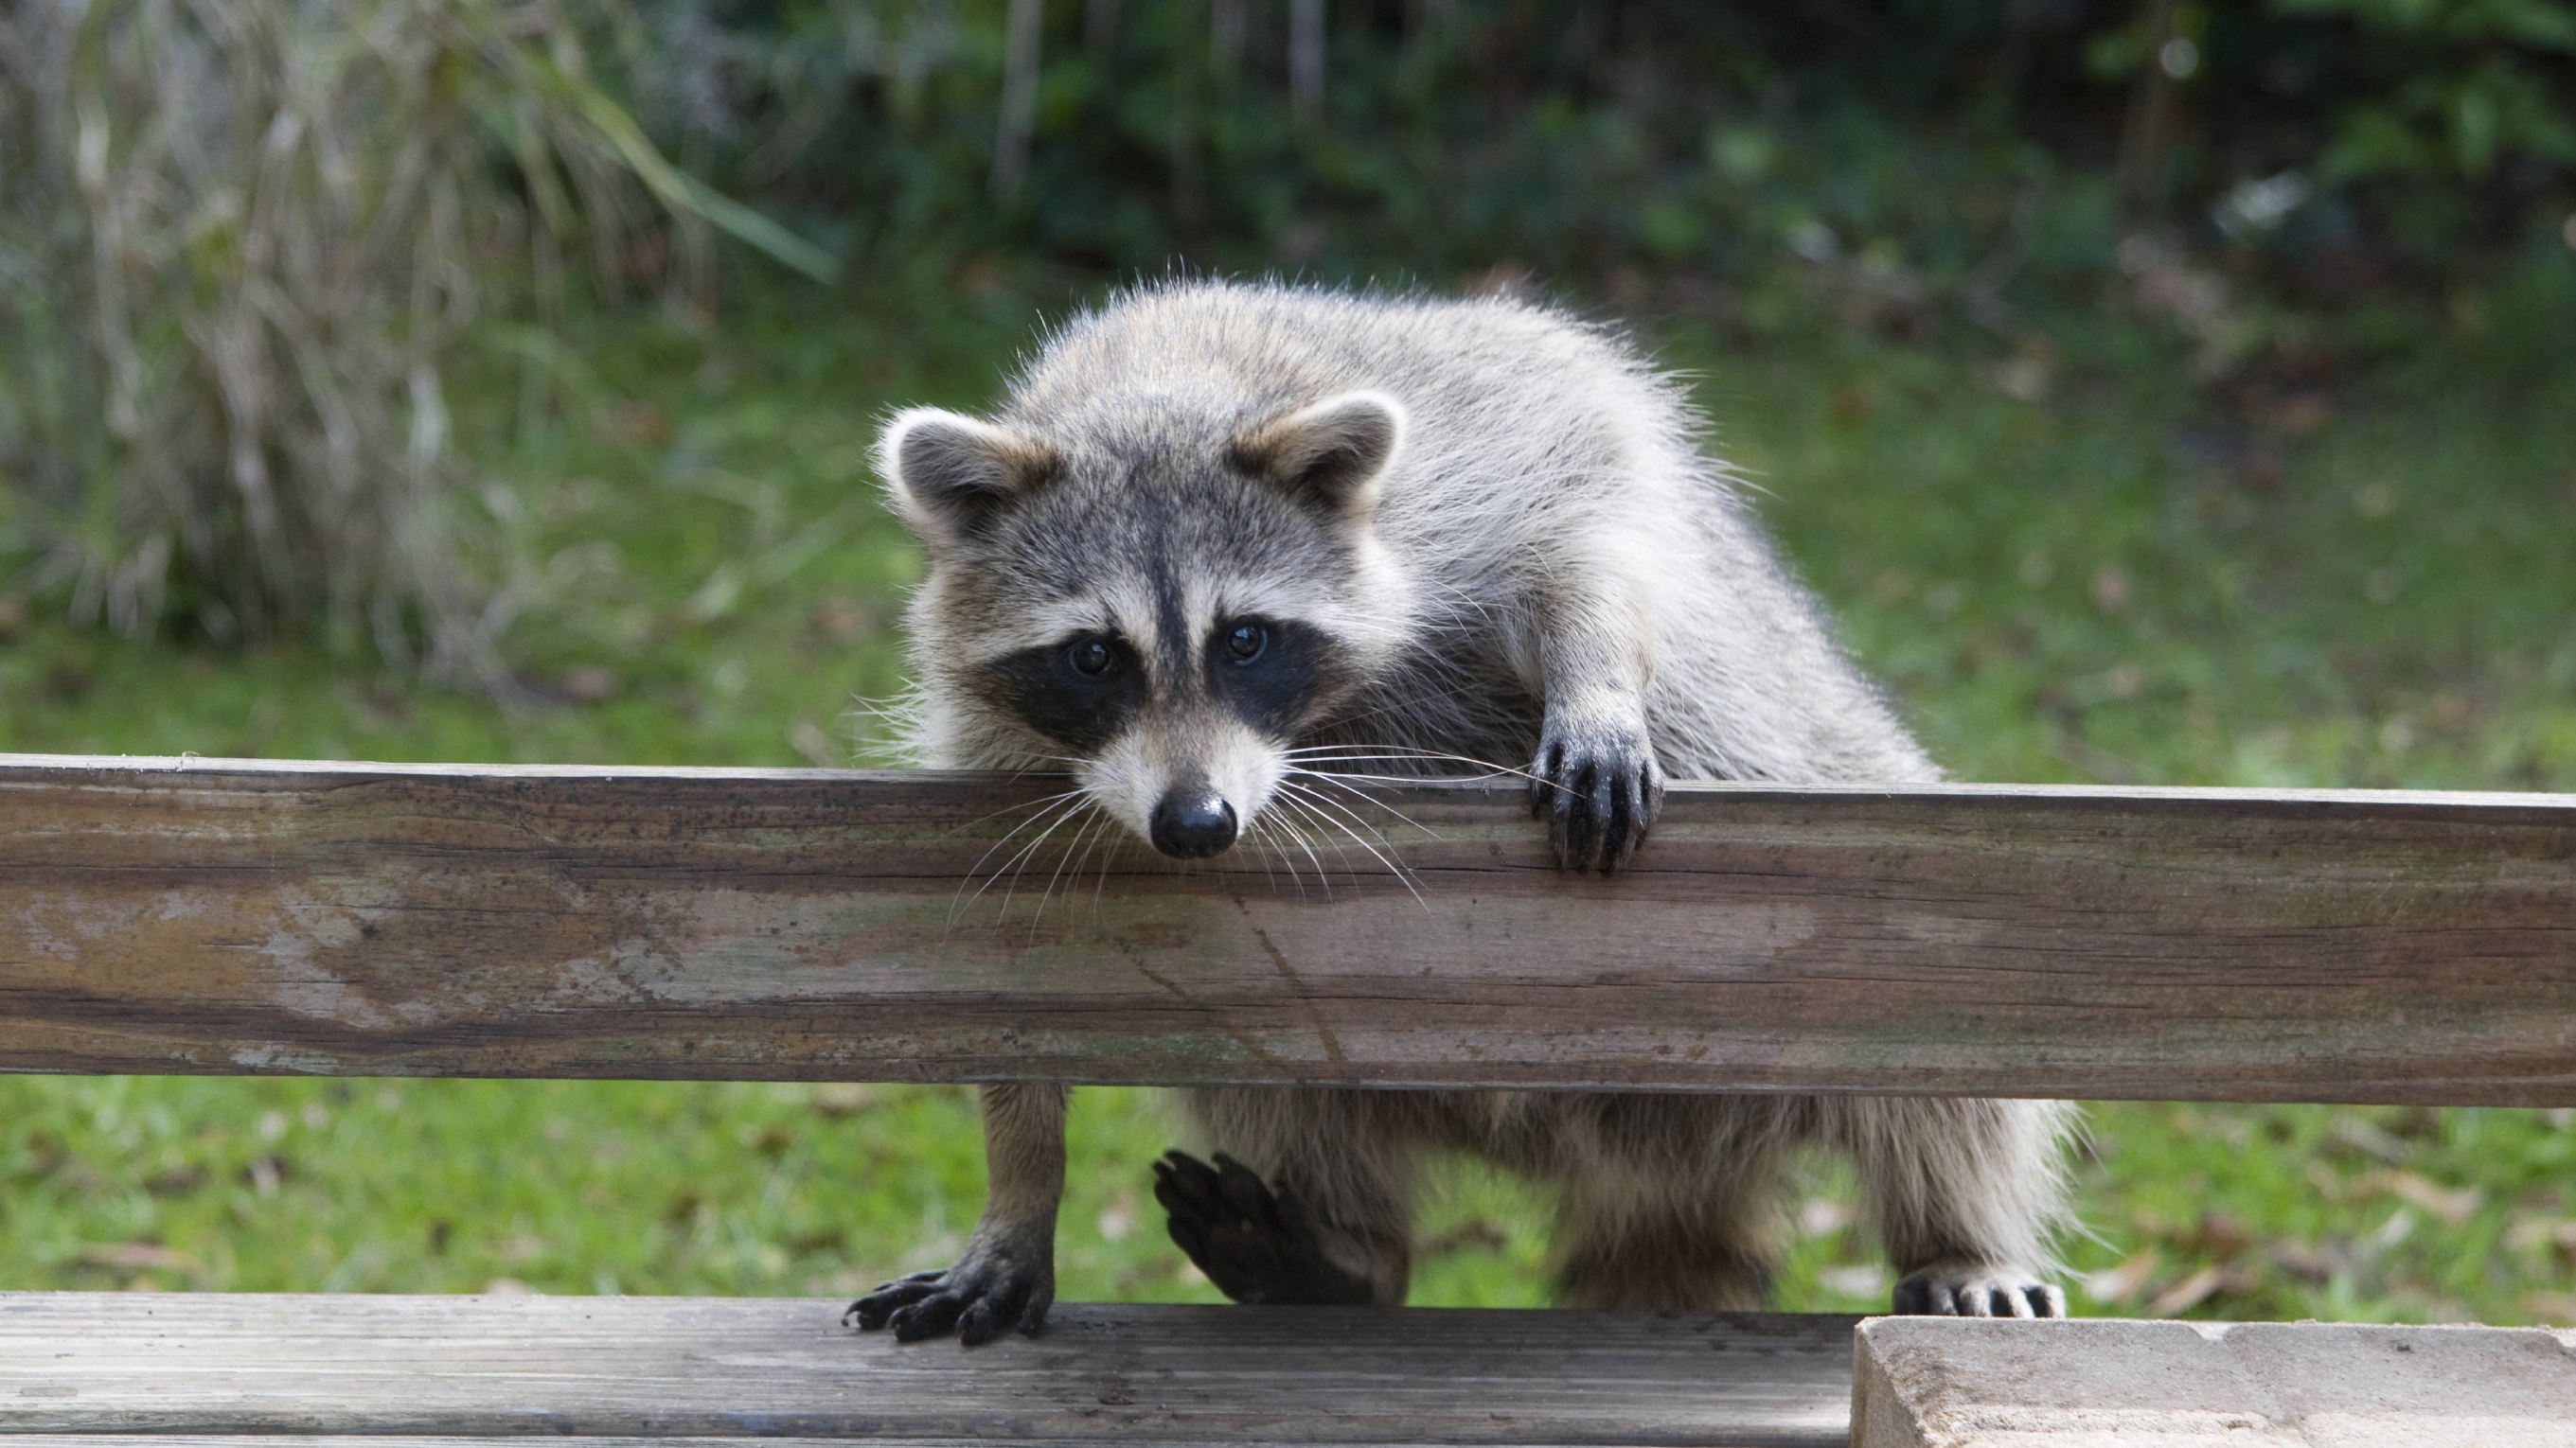 Drugged Marshmallows Can Keep Urban Raccoons From ...